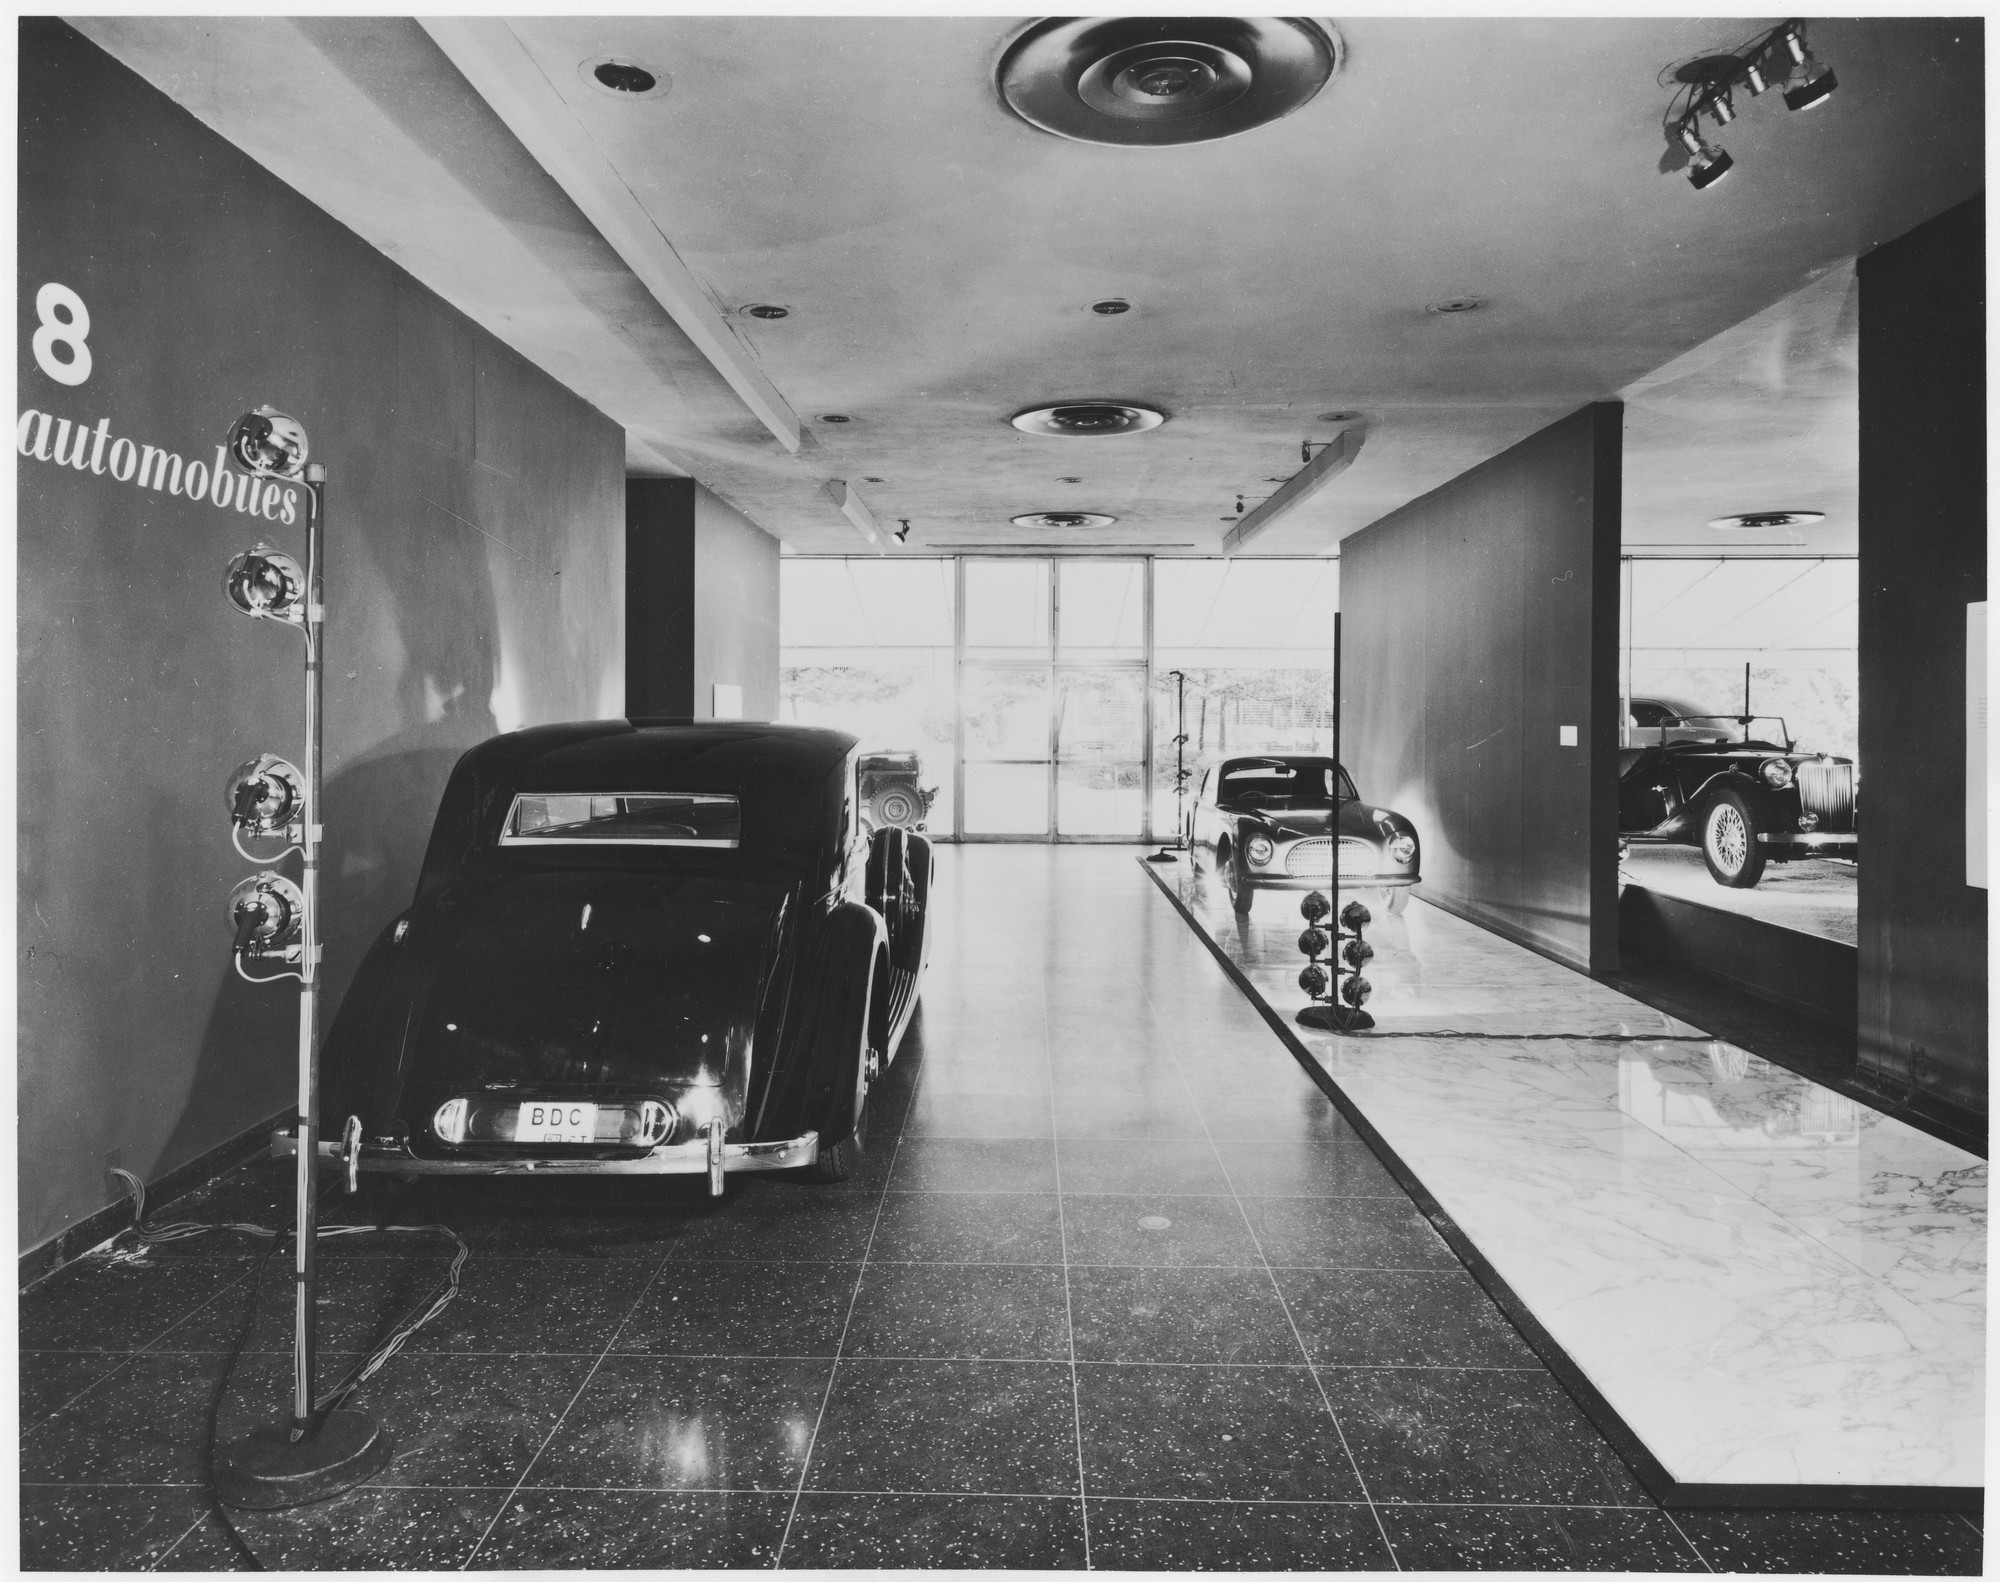 "Installation view of the exhibition, ""Eight Automobiles."" August 28, 1951–November 11, 1951. Photographic Archive. The Museum of Modern Art Archives, New York. IN488.1"